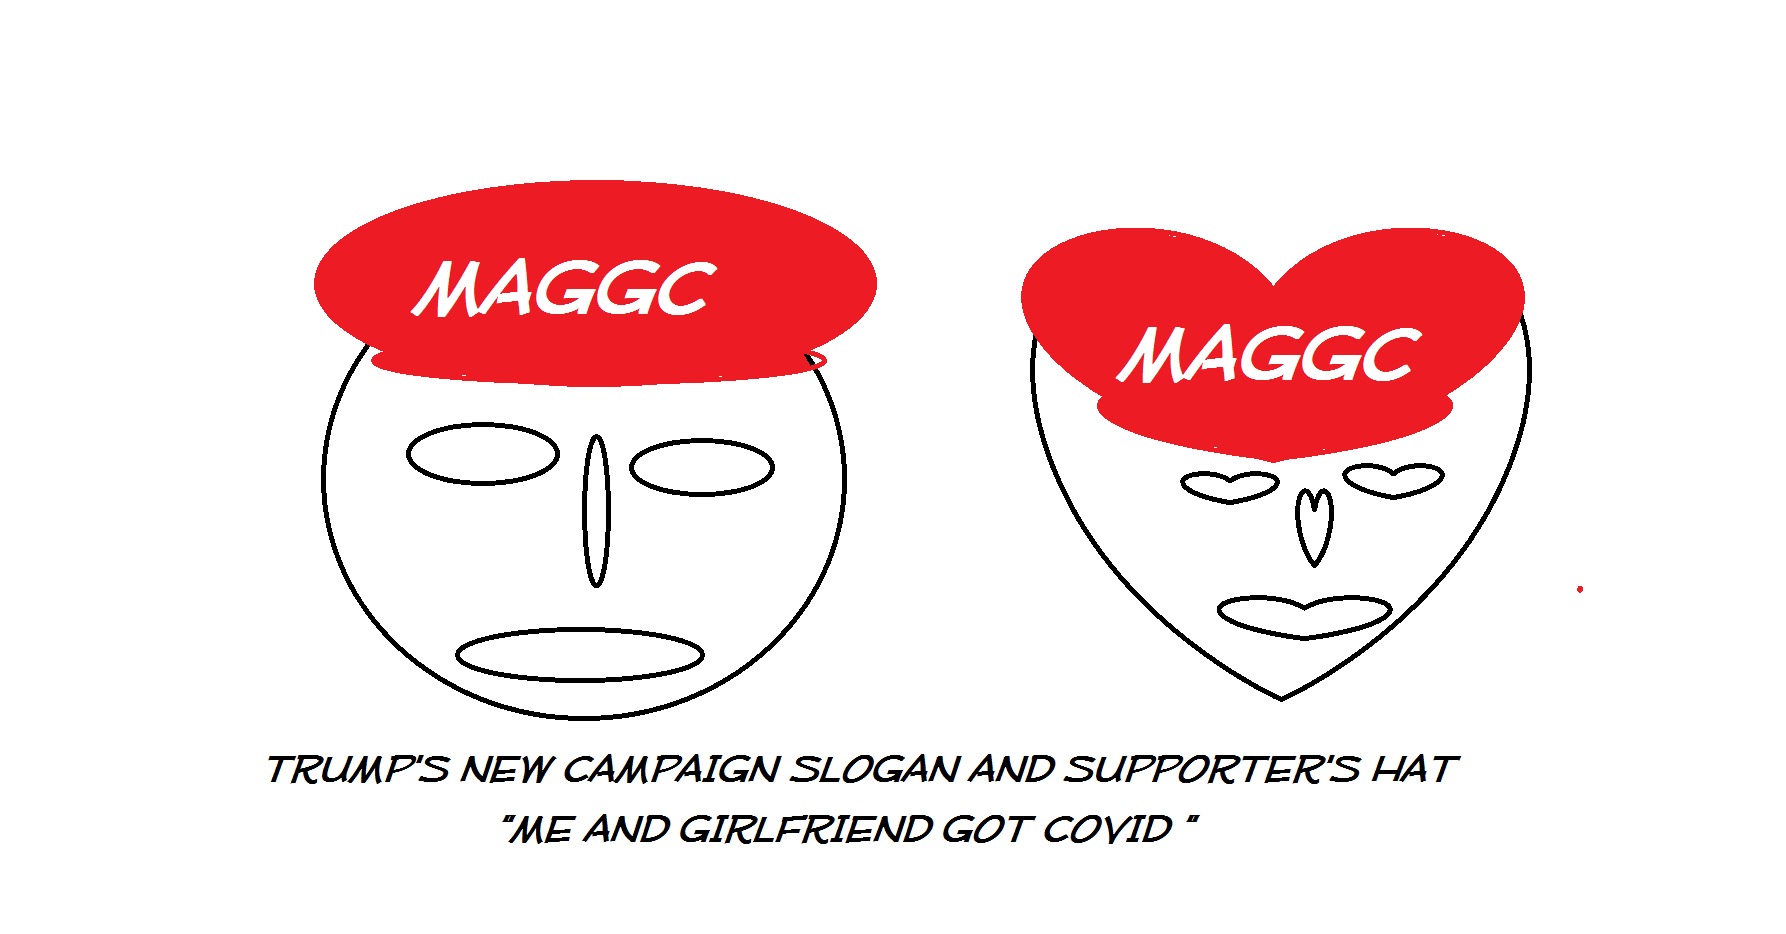 MAGGC NEW TRUMP HAT AND SLOGAN